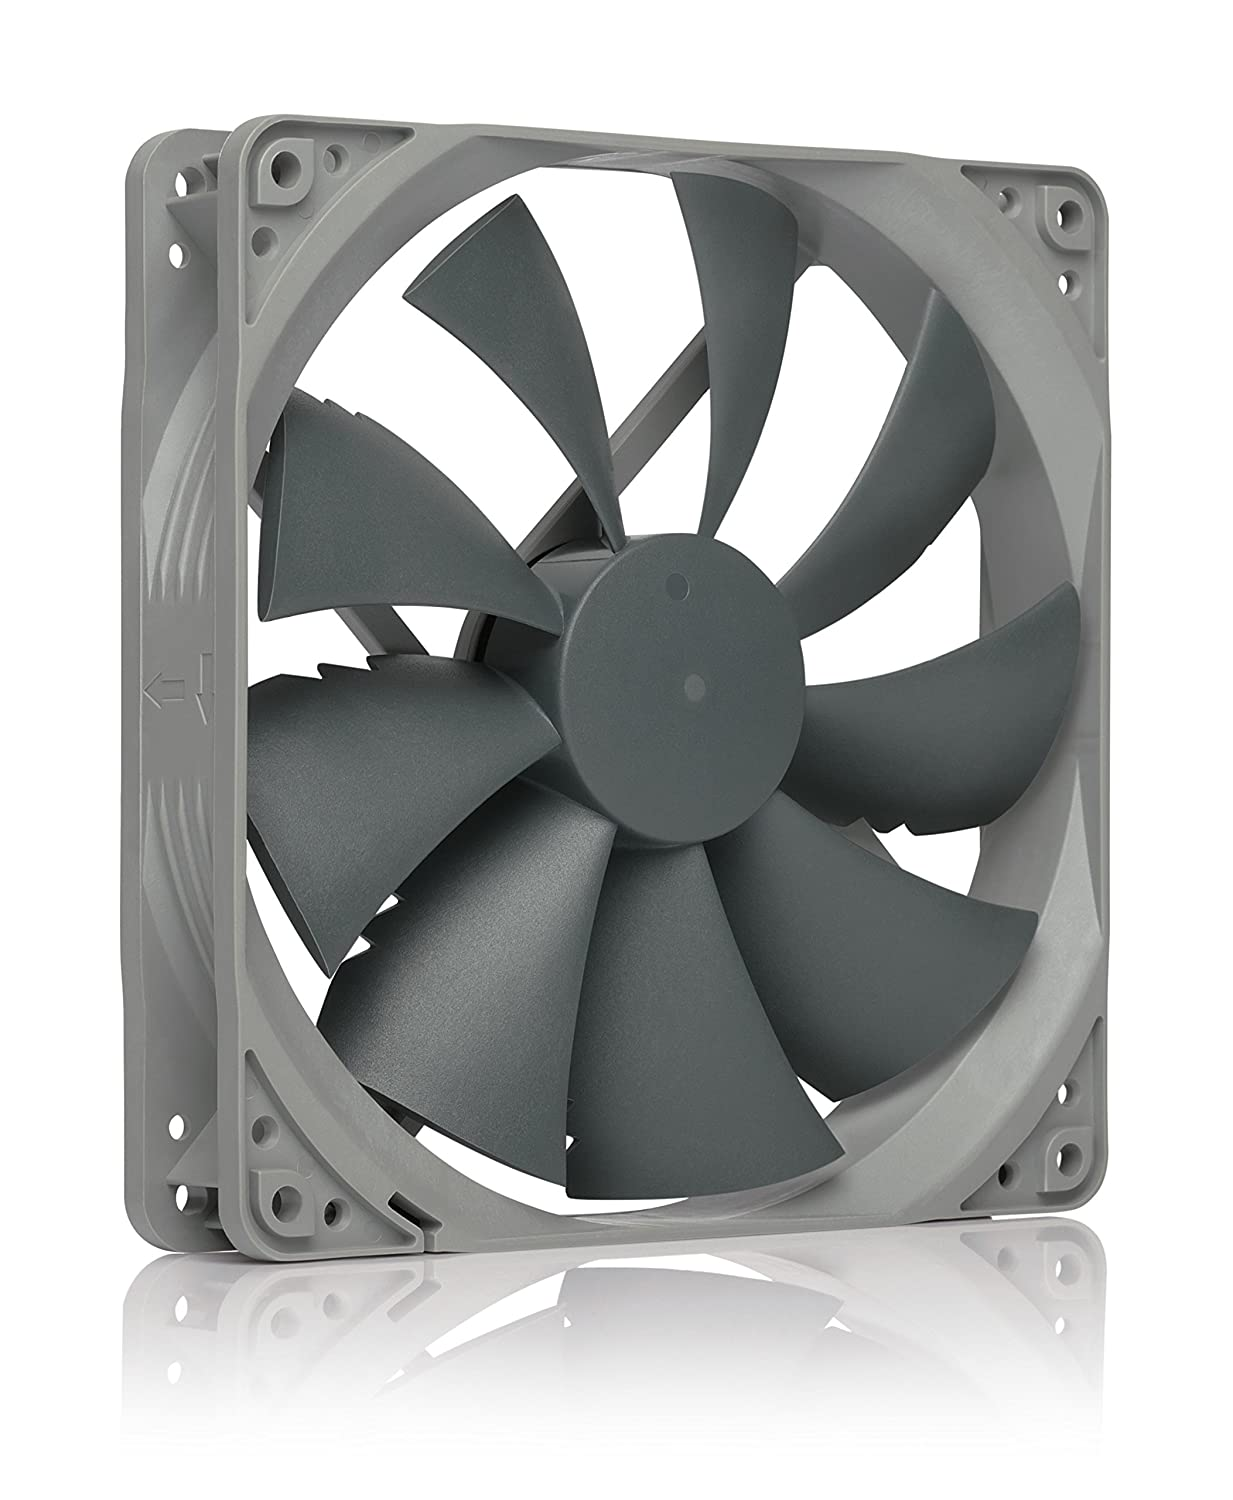 Noctua NF-P14s redux-1200 PWM, High Performance Cooling Fan, 4-Pin, 1200 RPM (140mm, Grey)